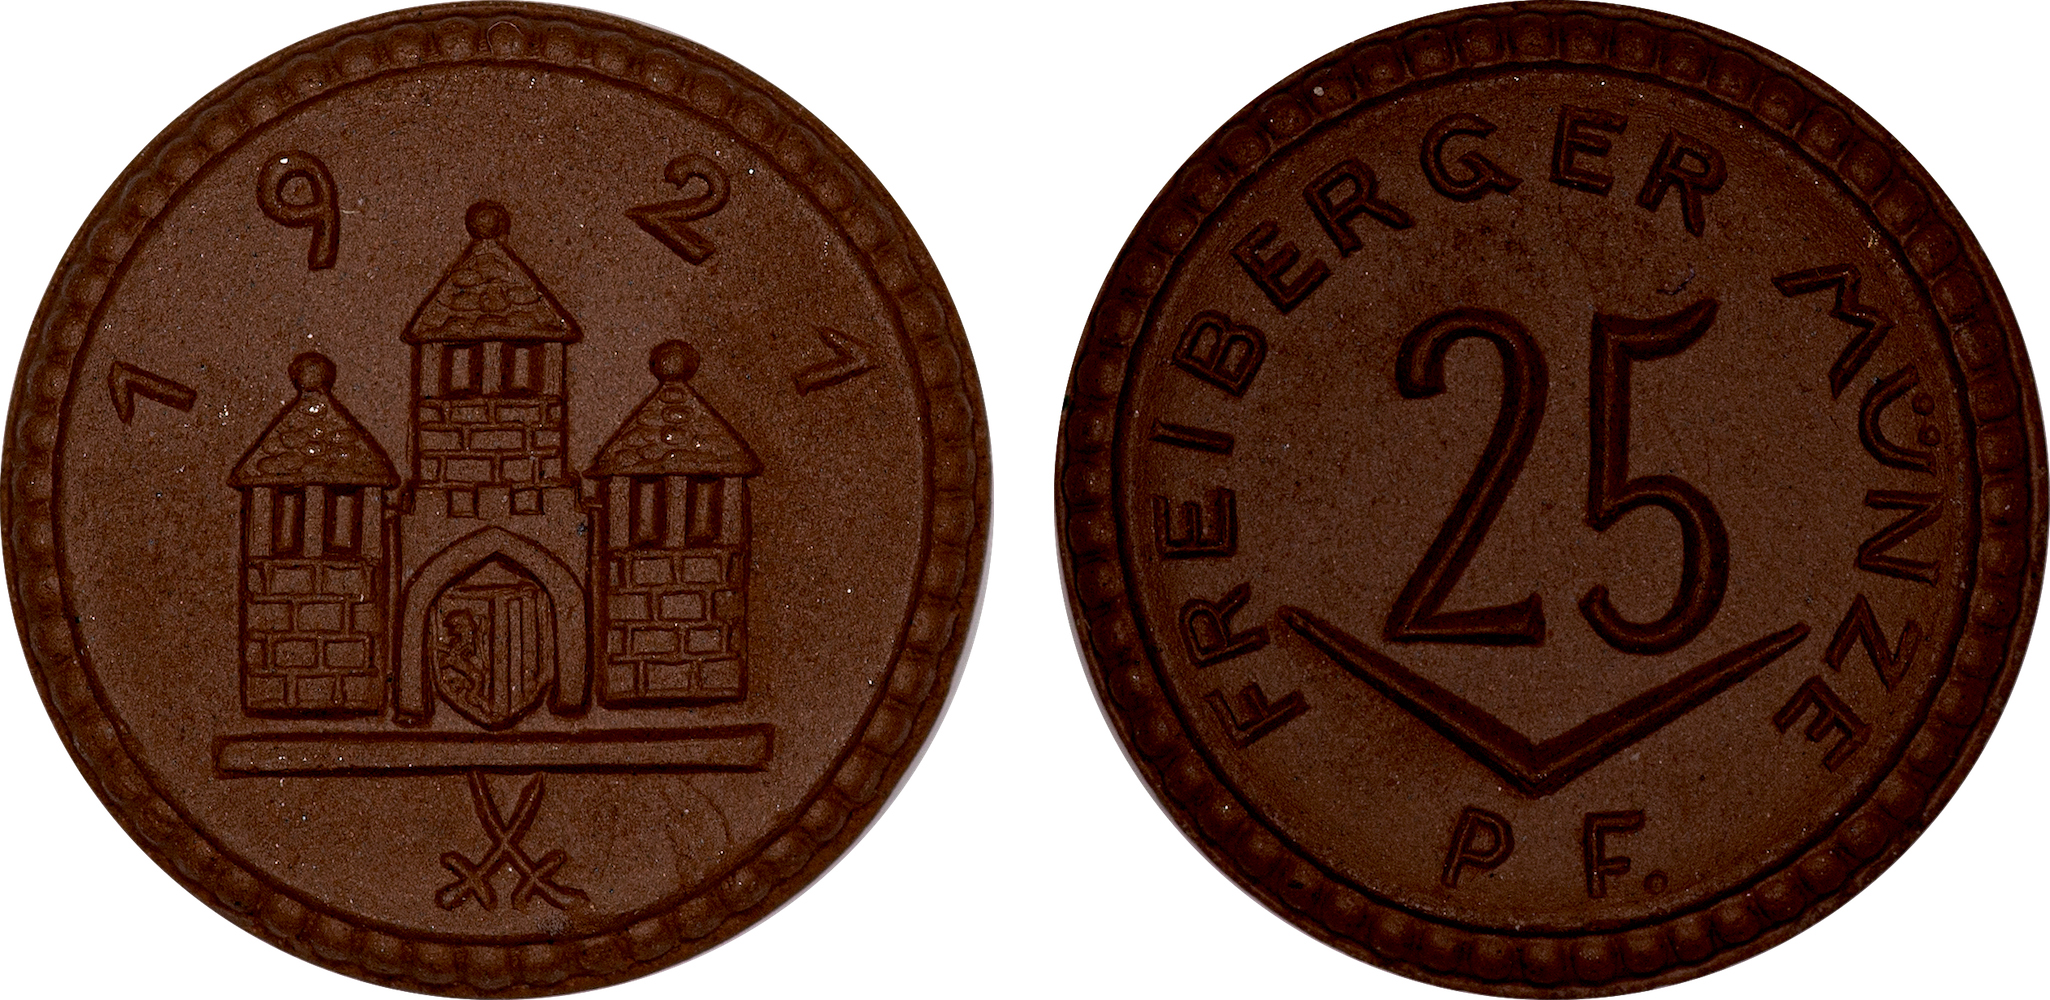 #6  Diameter: 21mm / Weight: 2.4g  Germany (Freiberg) - 1921 25 Pfennig